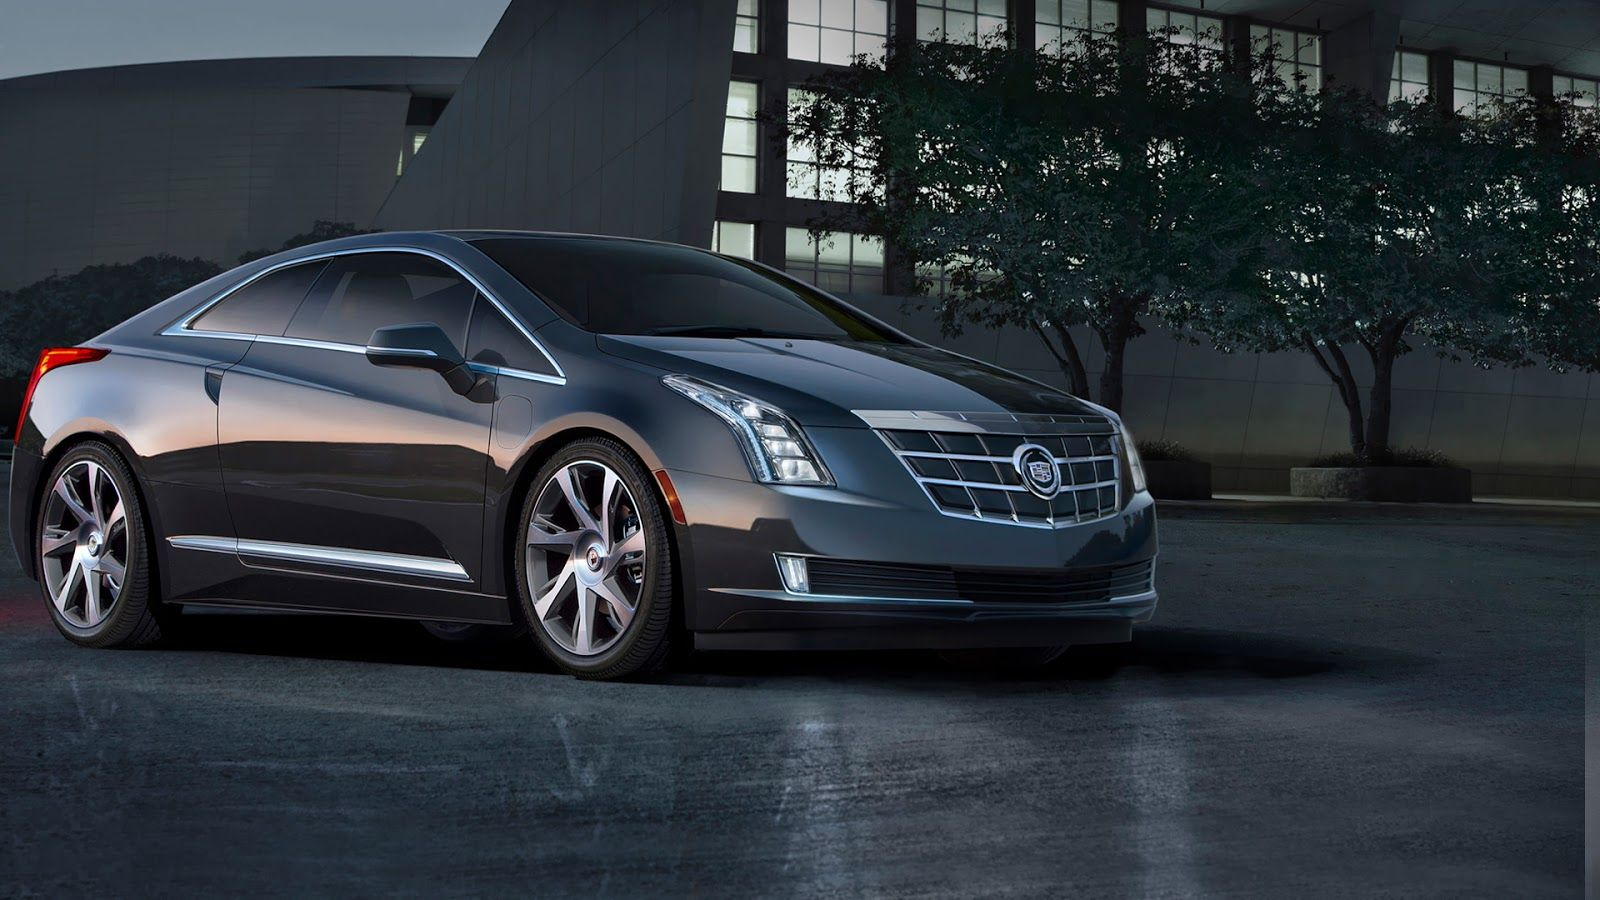 pin by susan smith on cadillac vehicles car elr performance specs